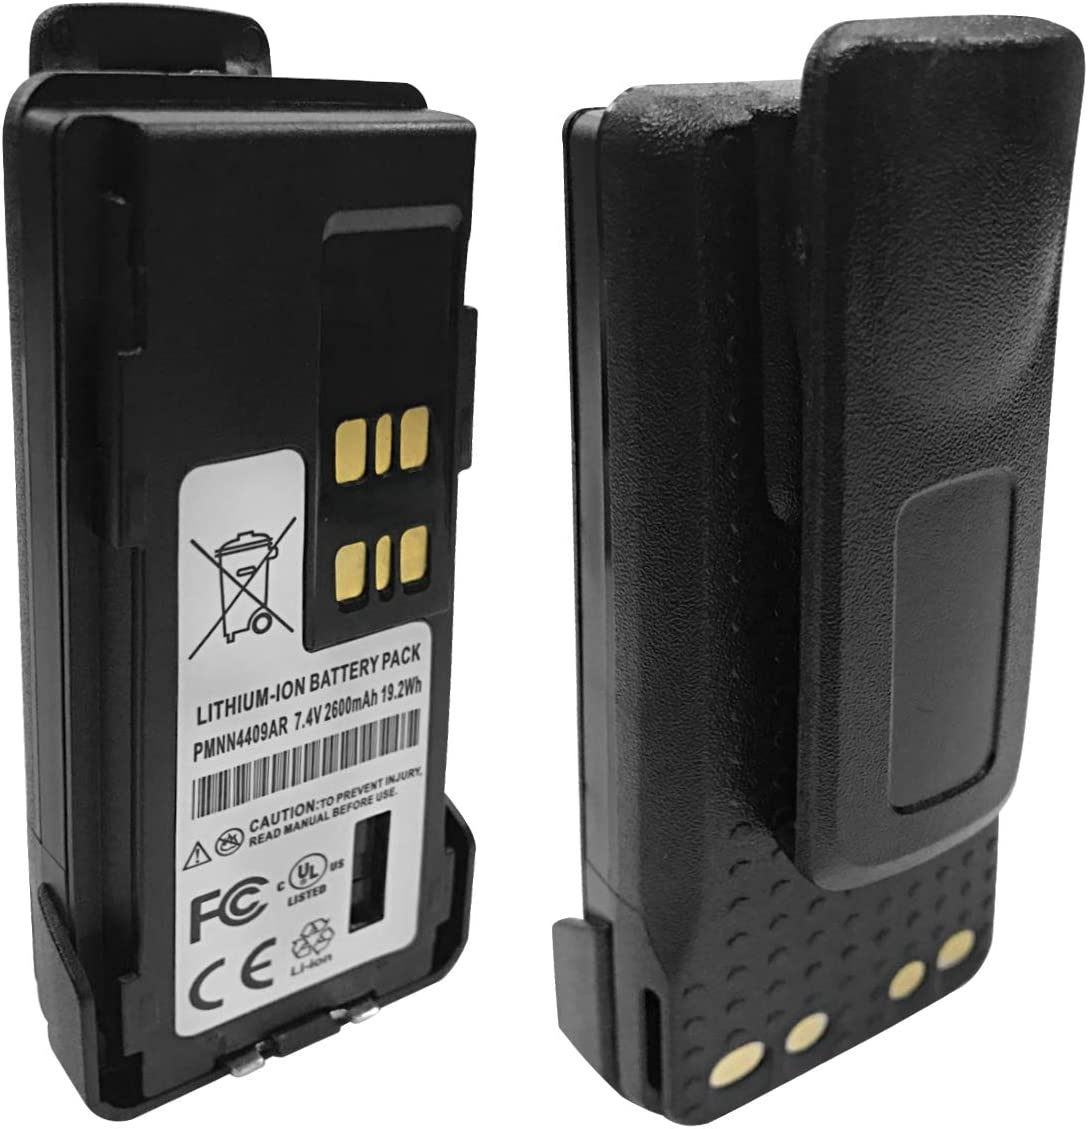 PMNN4409 Walkie Talkie Battery Replacement for Motorola DGP5050 DGP5550 DGP8050 DGP8550 APX4000 AXP2000 XPR7380e XPR7550e XPR7580e Portable Radio: Home Audio & Theater